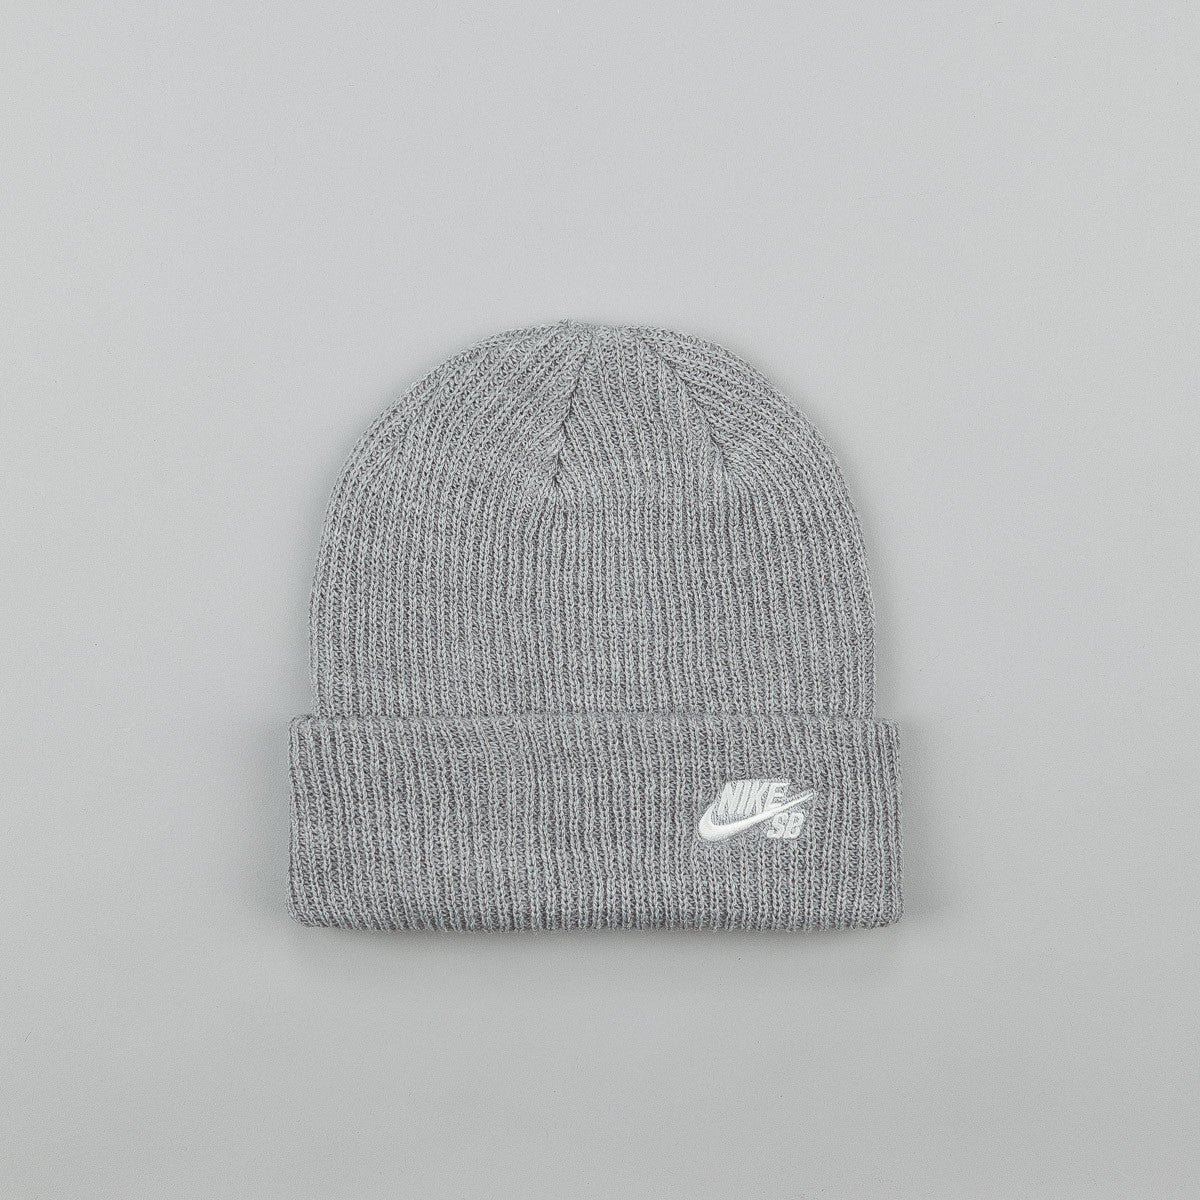 Nike SB Fisherman Beanie Grey / Light Bone